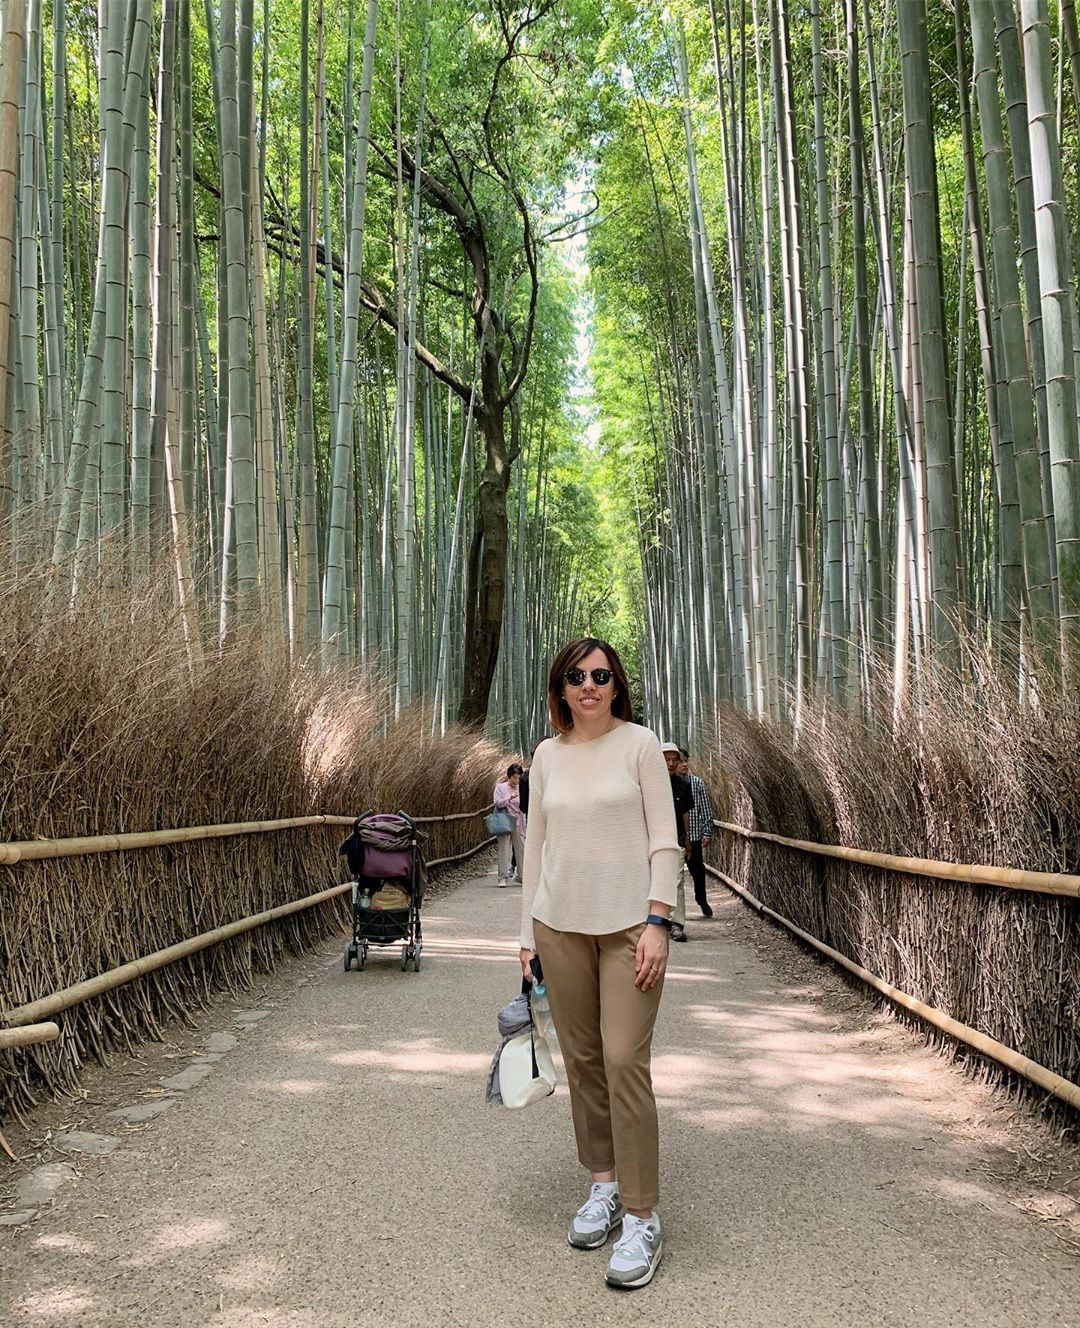 Blending into the environment. #arashimaya #tenryuji #arashiyamabambooforest #bambooforest #bamboogrove #kyoto #japan #e...